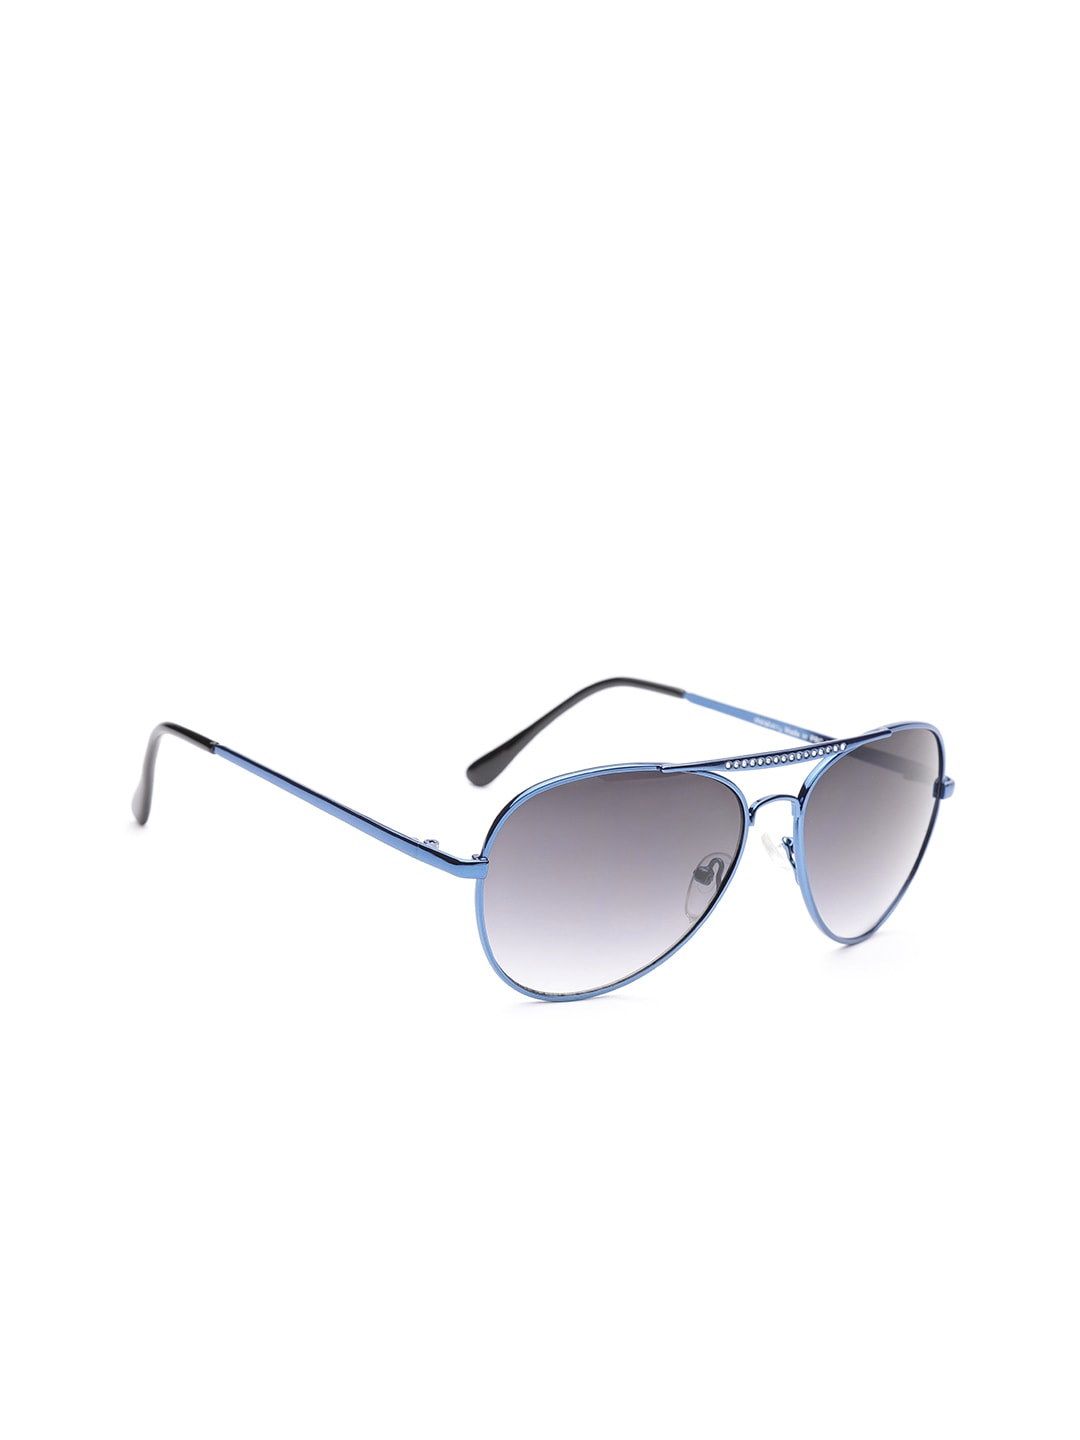 ed2f0432dd6 Sunglasses - Buy Shades for Men and Women Online in India